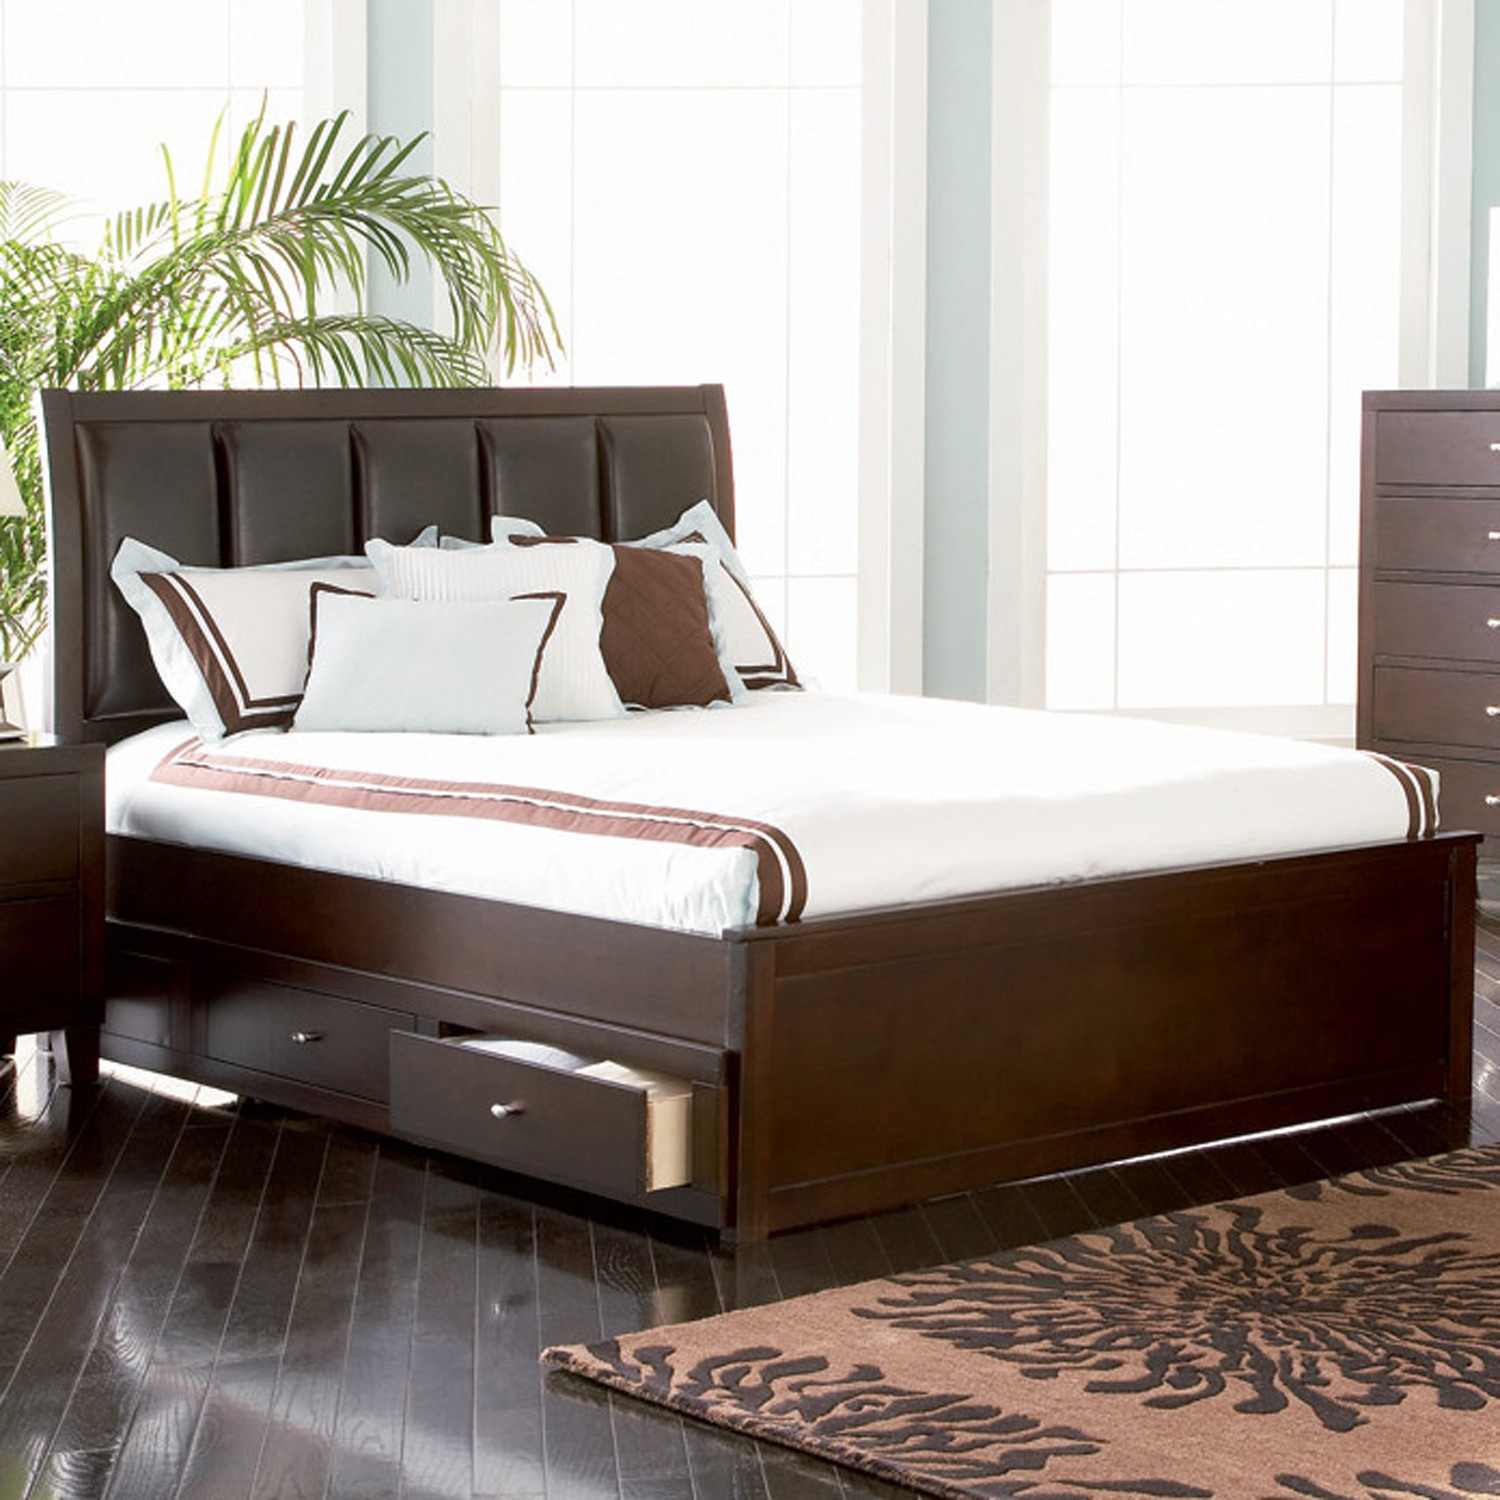 How to buy a king size bed with mattress